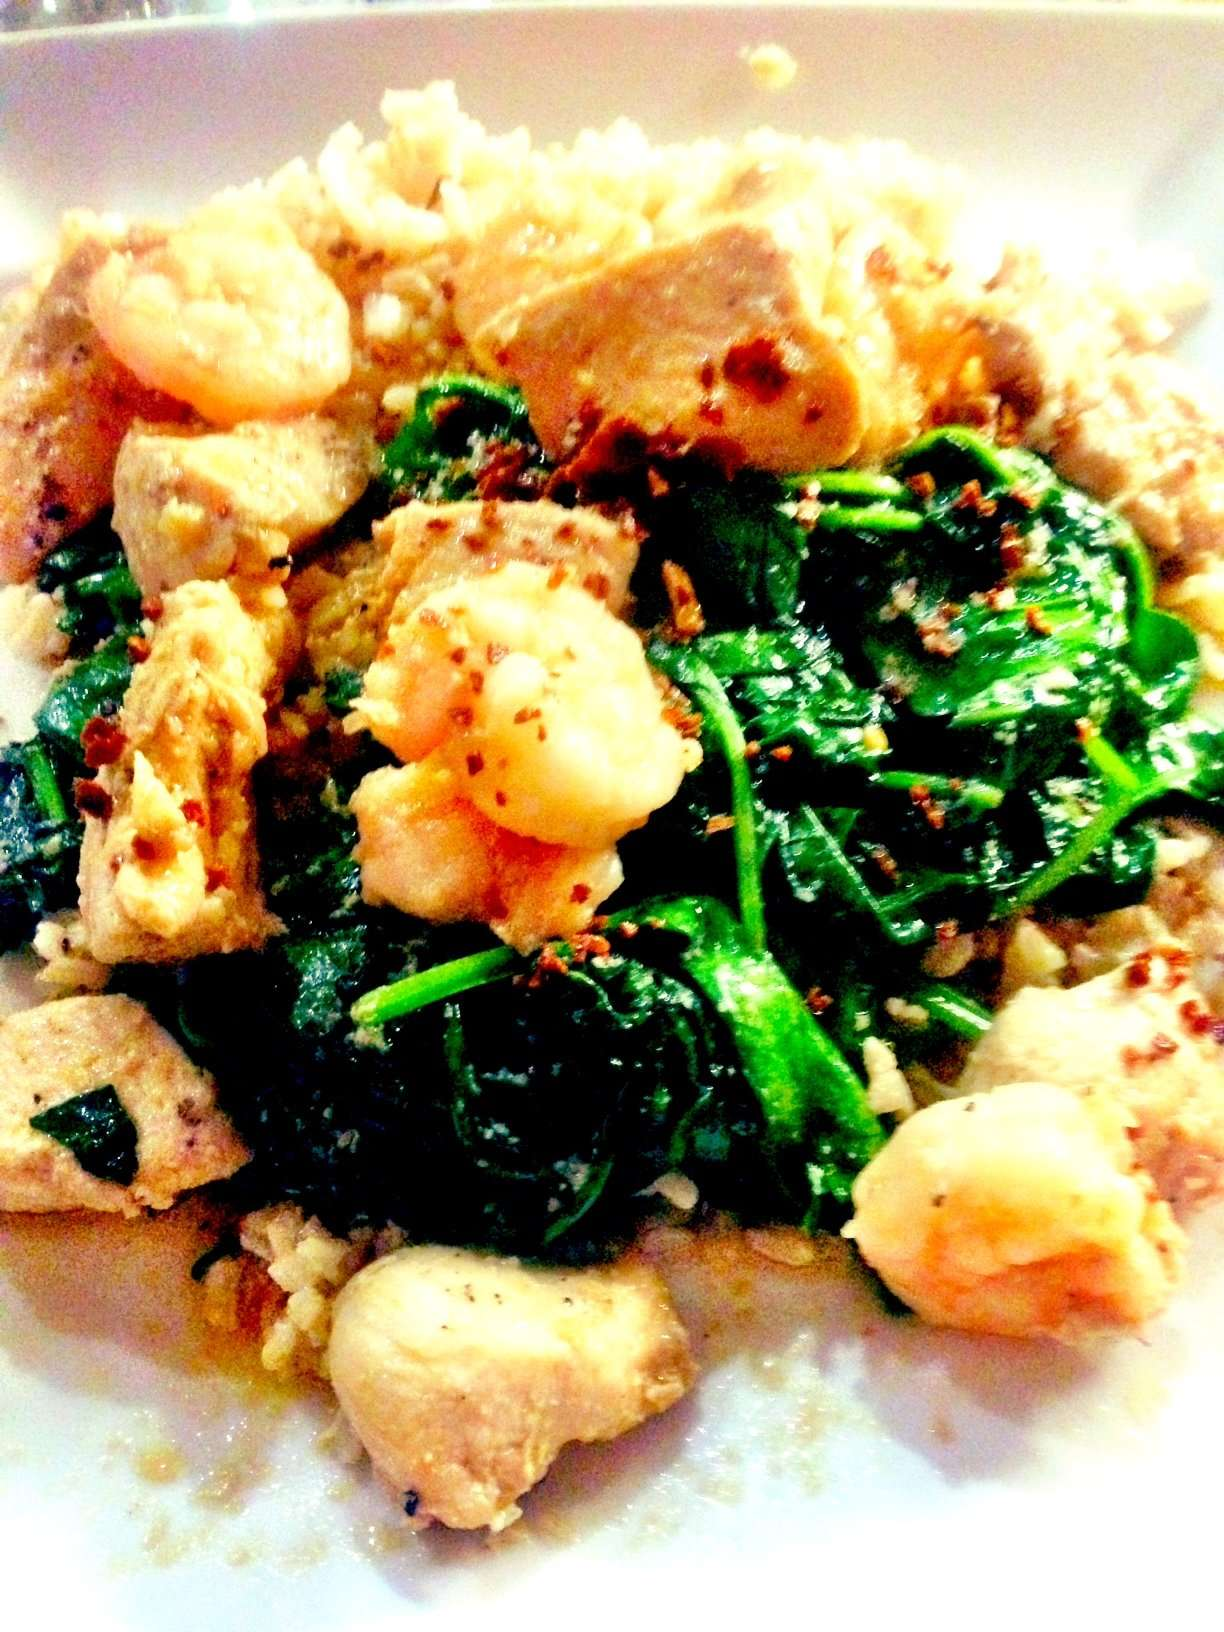 Hot Thai Kitchen – Garlic Pepper Chicken and Shrimp | The Paleo ...